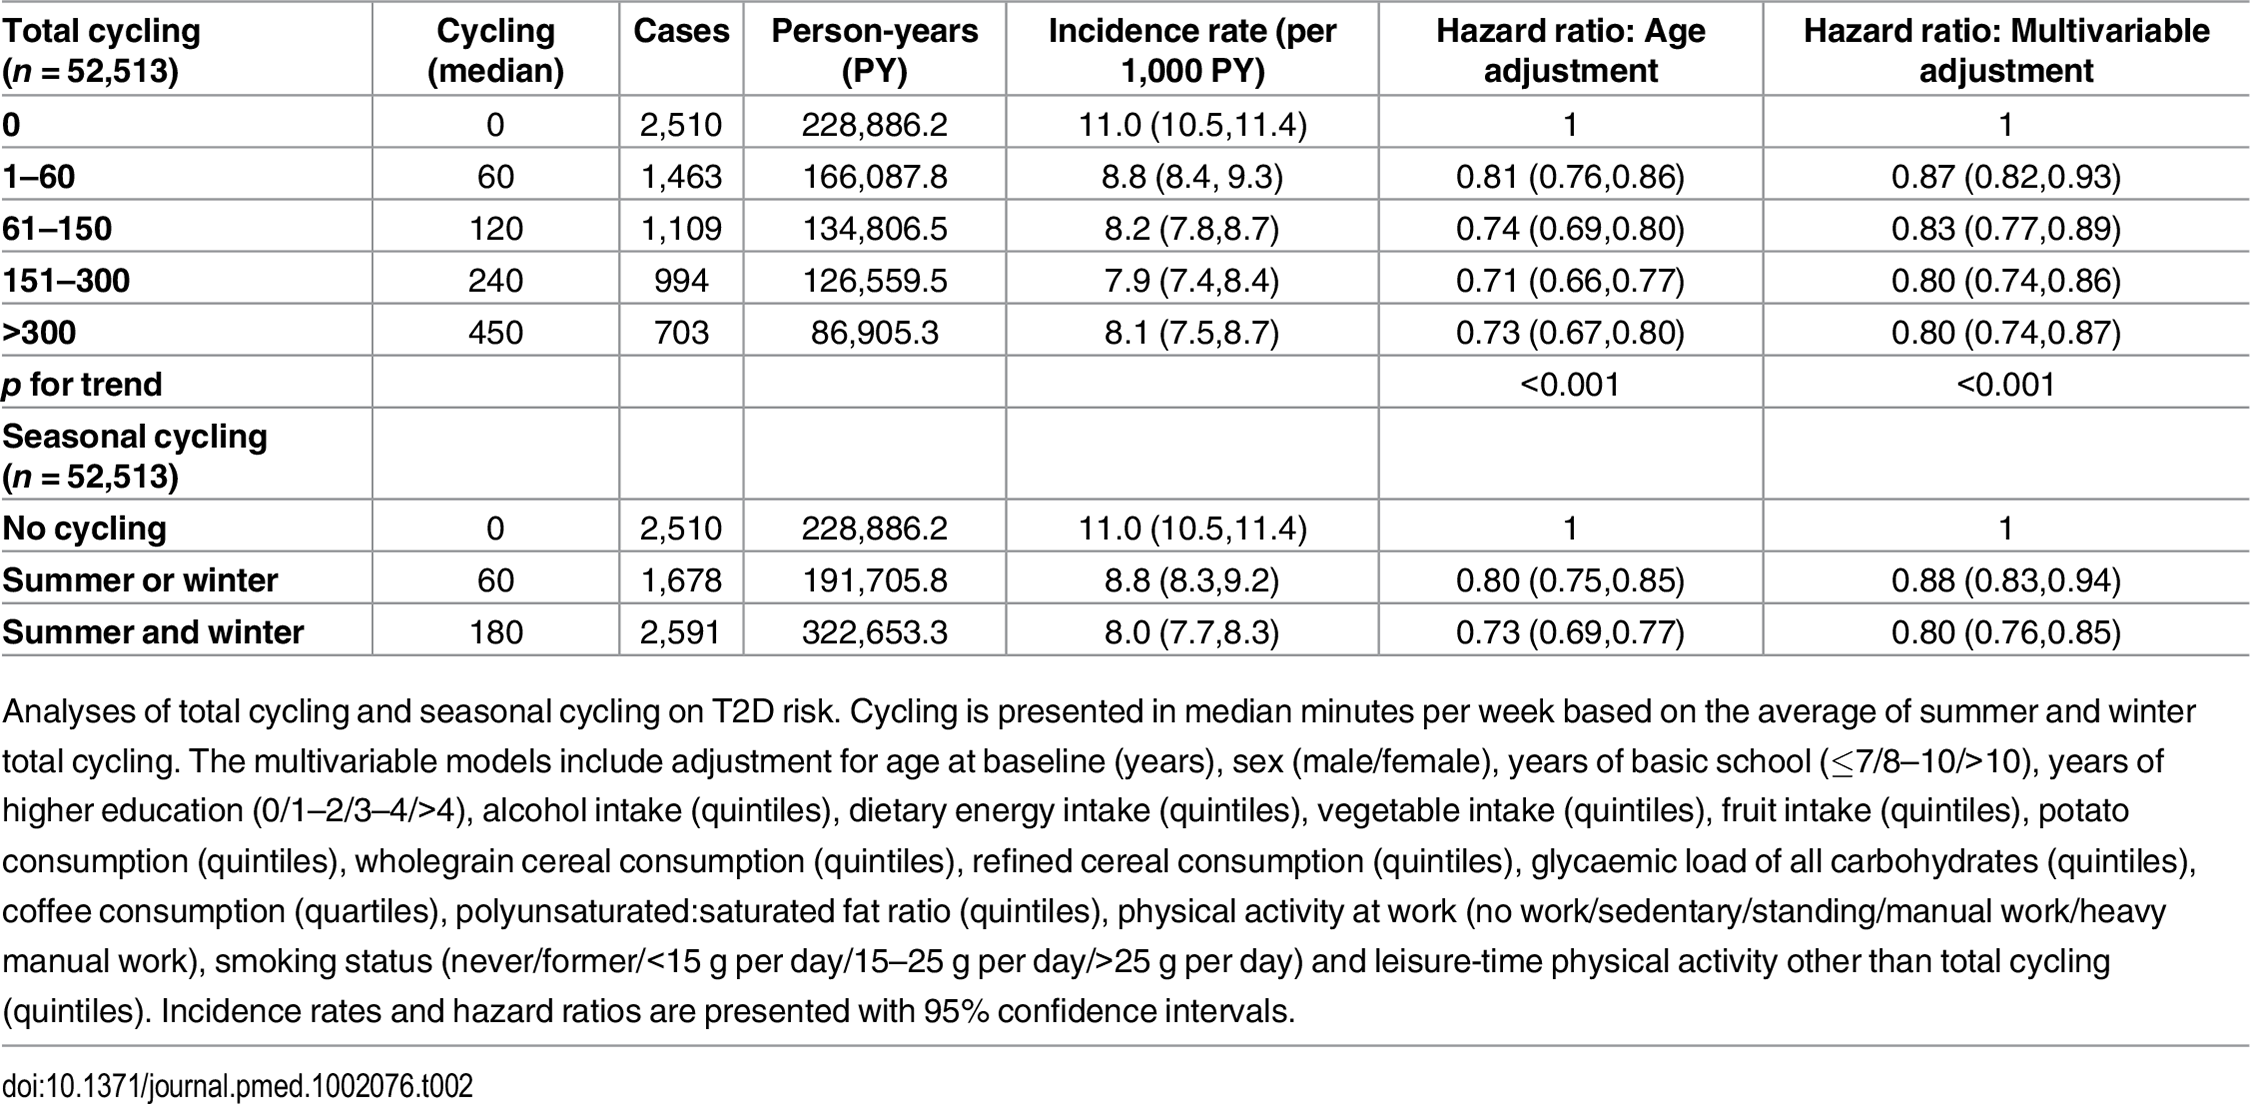 Associated risk of T2D according to total cycling and seasonal cycling.